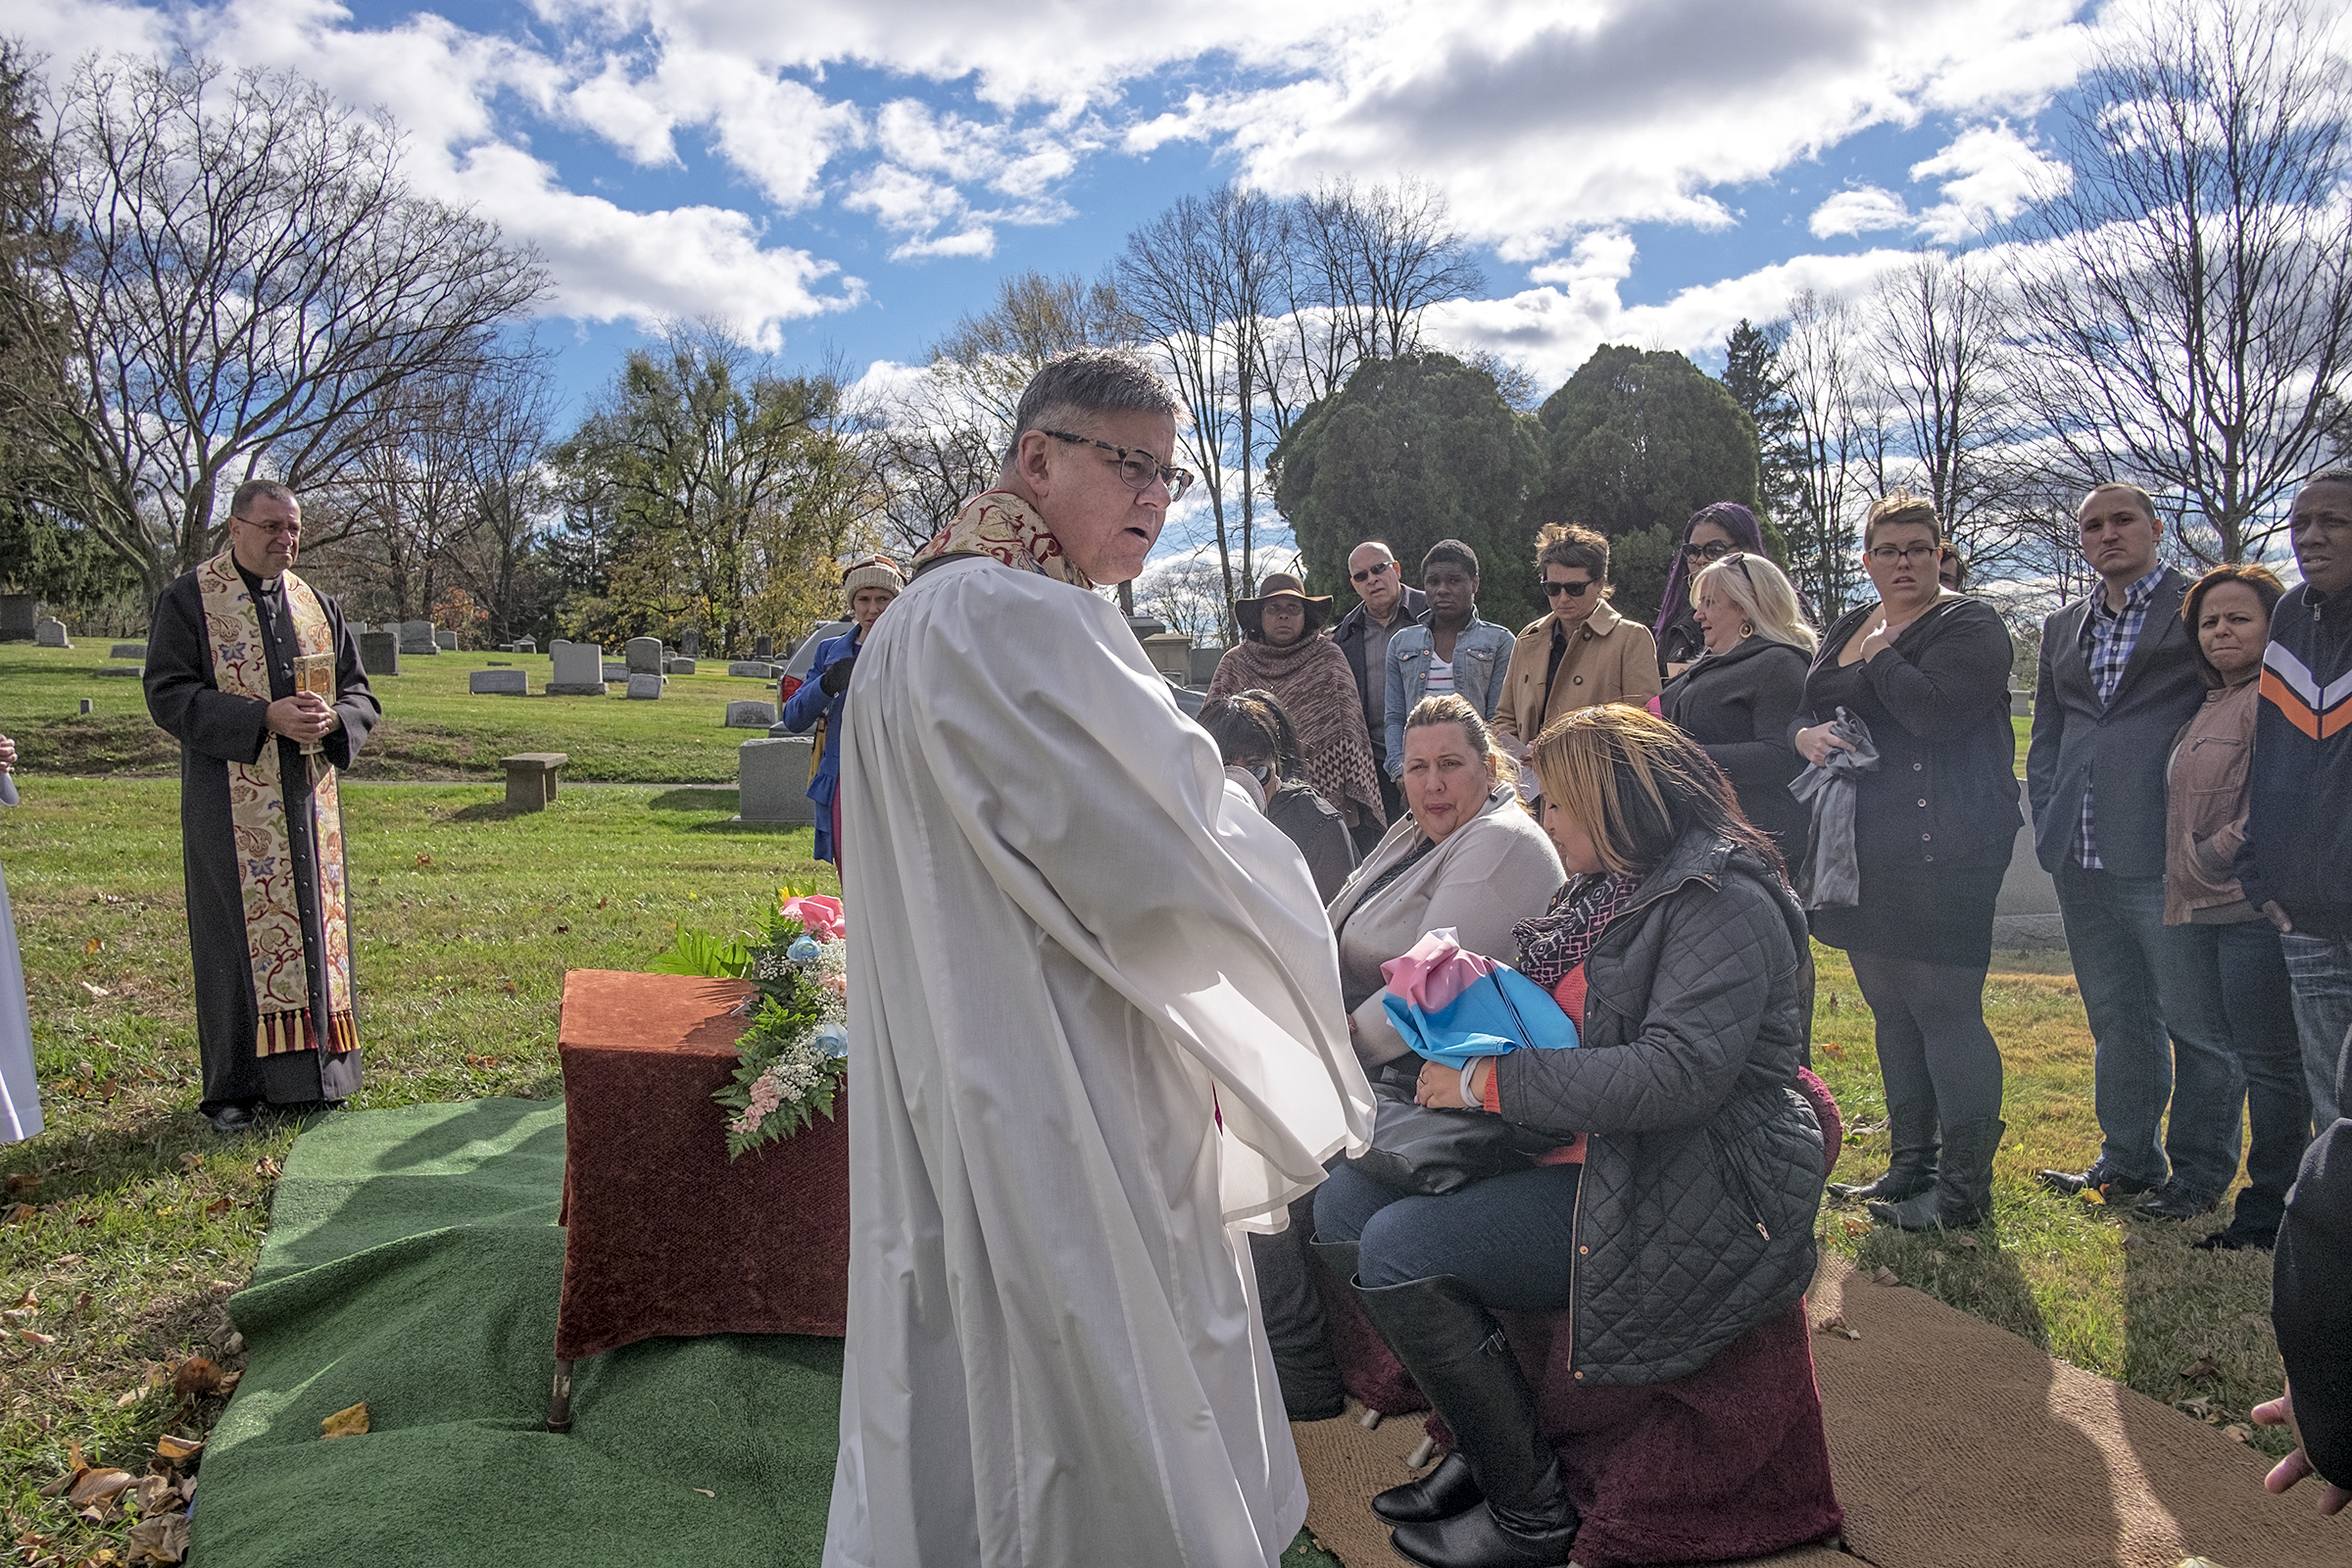 A small group of mourners met in November 2015 at the St. Miriam Cathedral in Flourtown to pay their final respects and lay to lay to rest Diamond Williams, a transgender woman murdered in 2013.